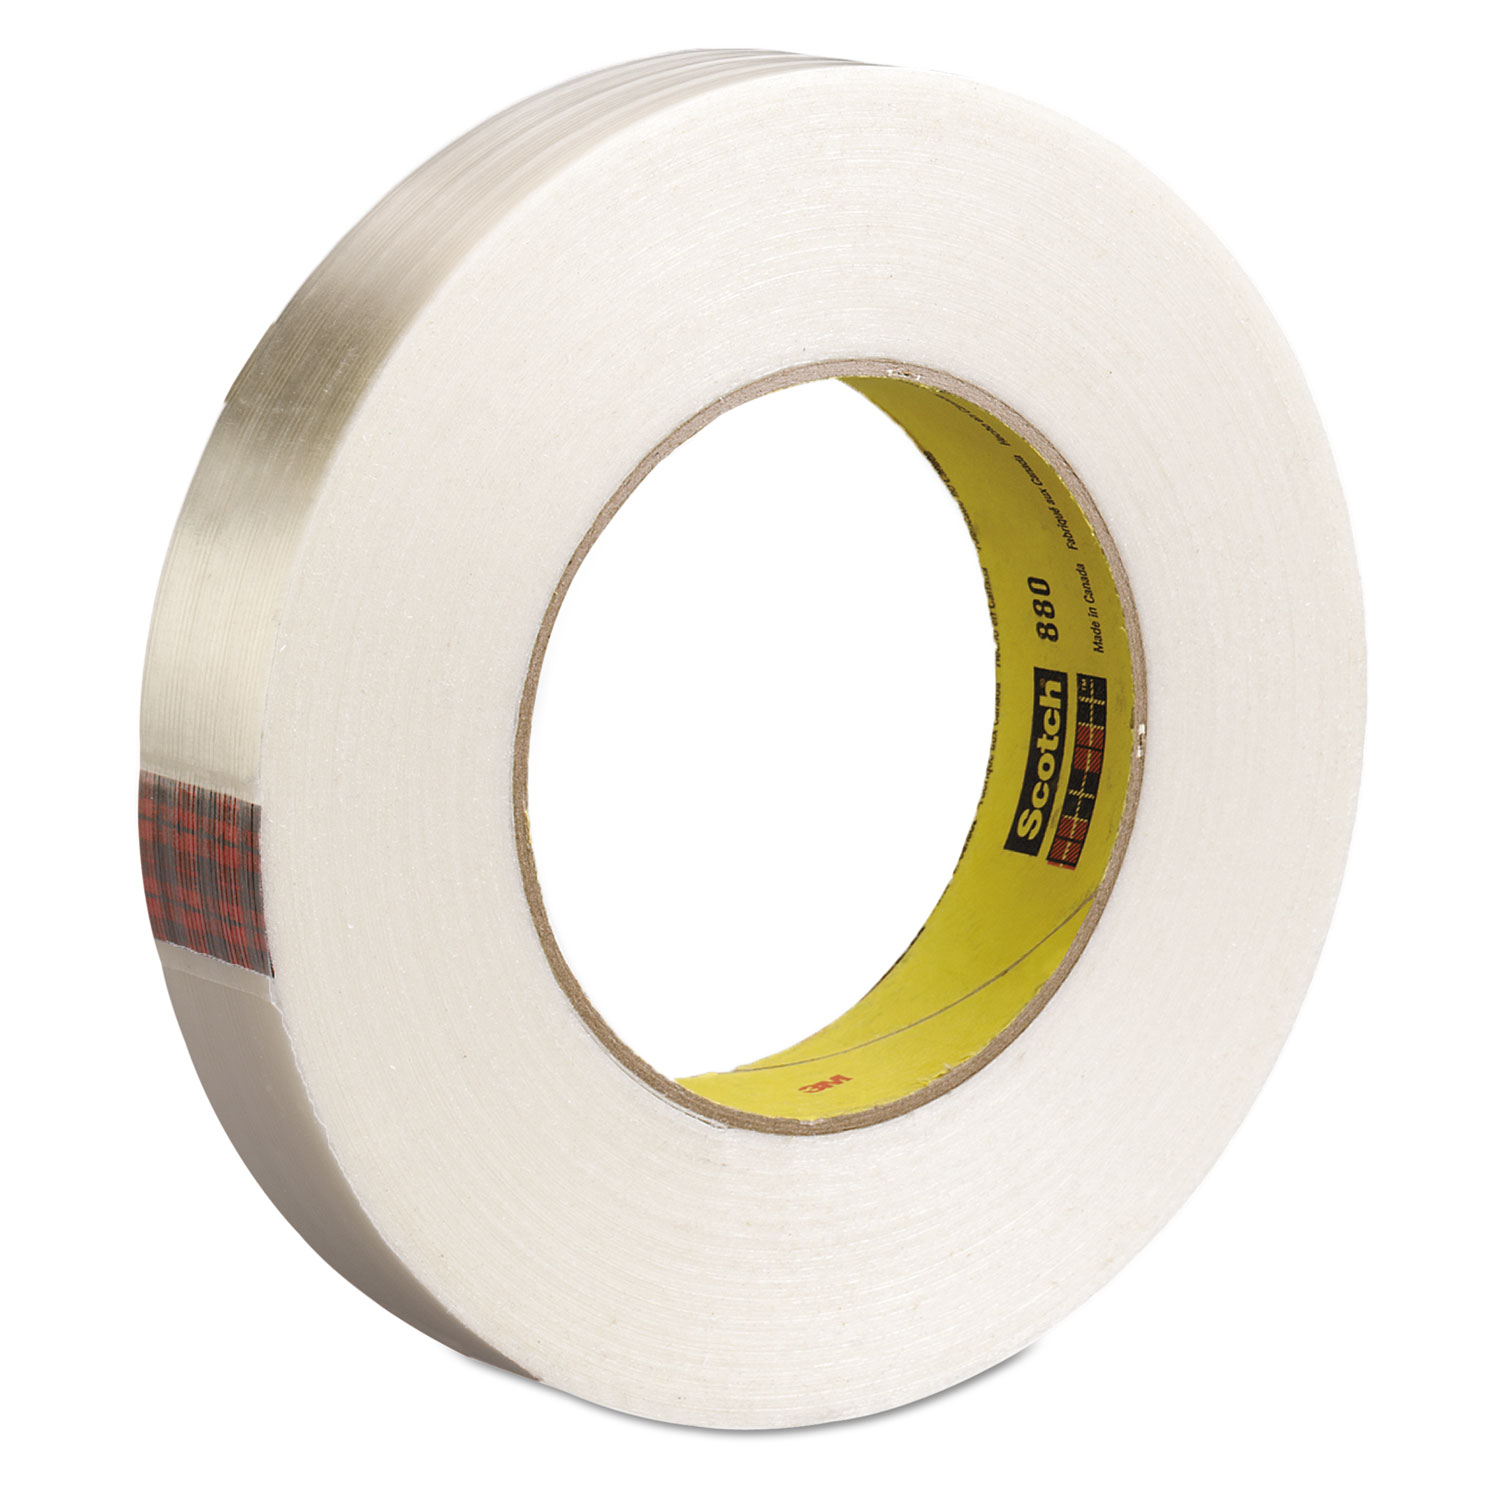 High-Strength Filament Tape, Rubber, 18mm x 55m, 3